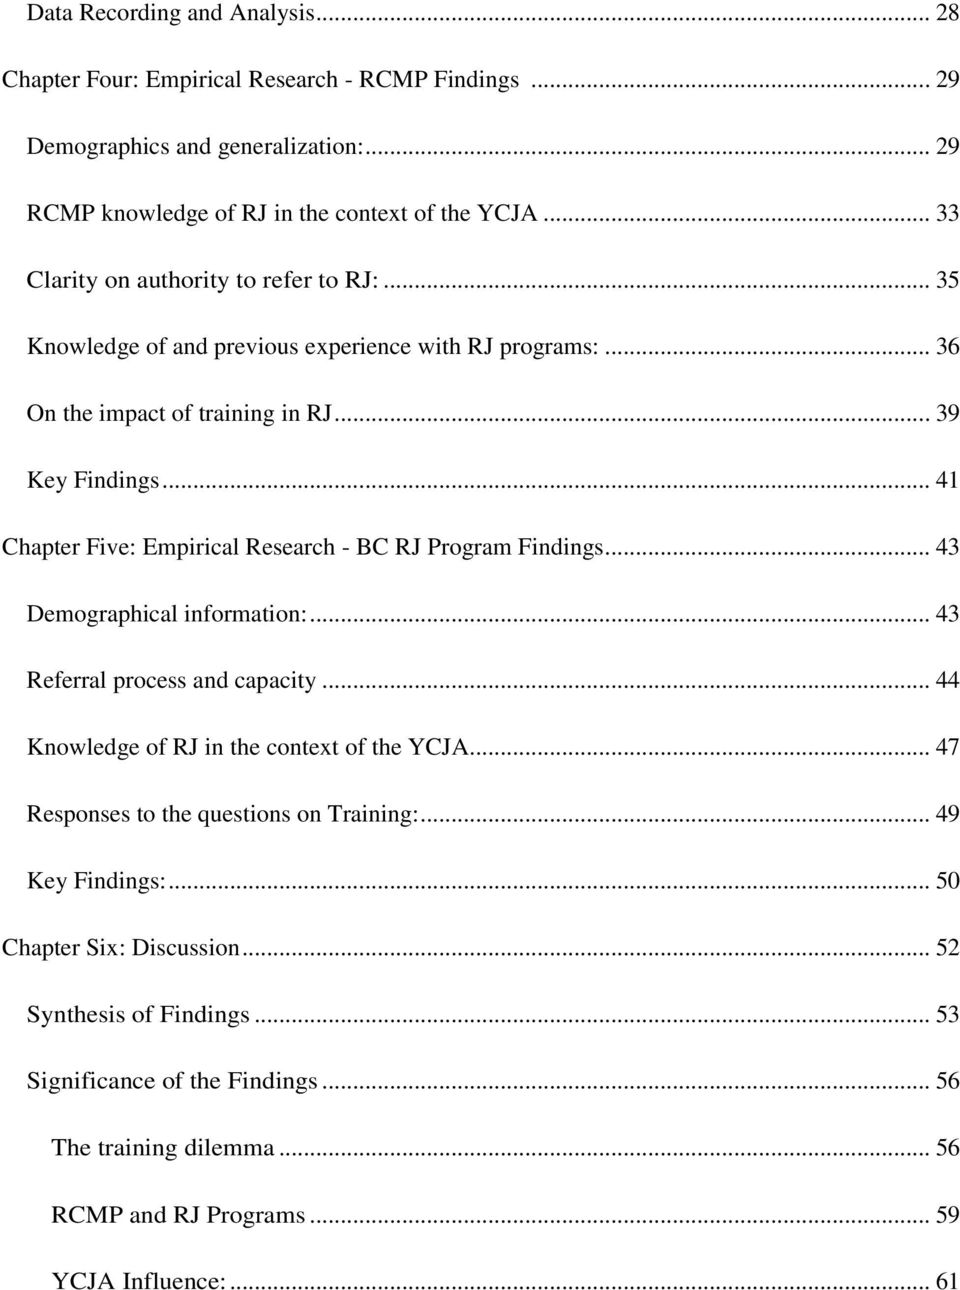 .. 41 Chapter Five: Empirical Research - BC RJ Program Findings... 43 Demographical information:... 43 Referral process and capacity... 44 Knowledge of RJ in the context of the YCJA.